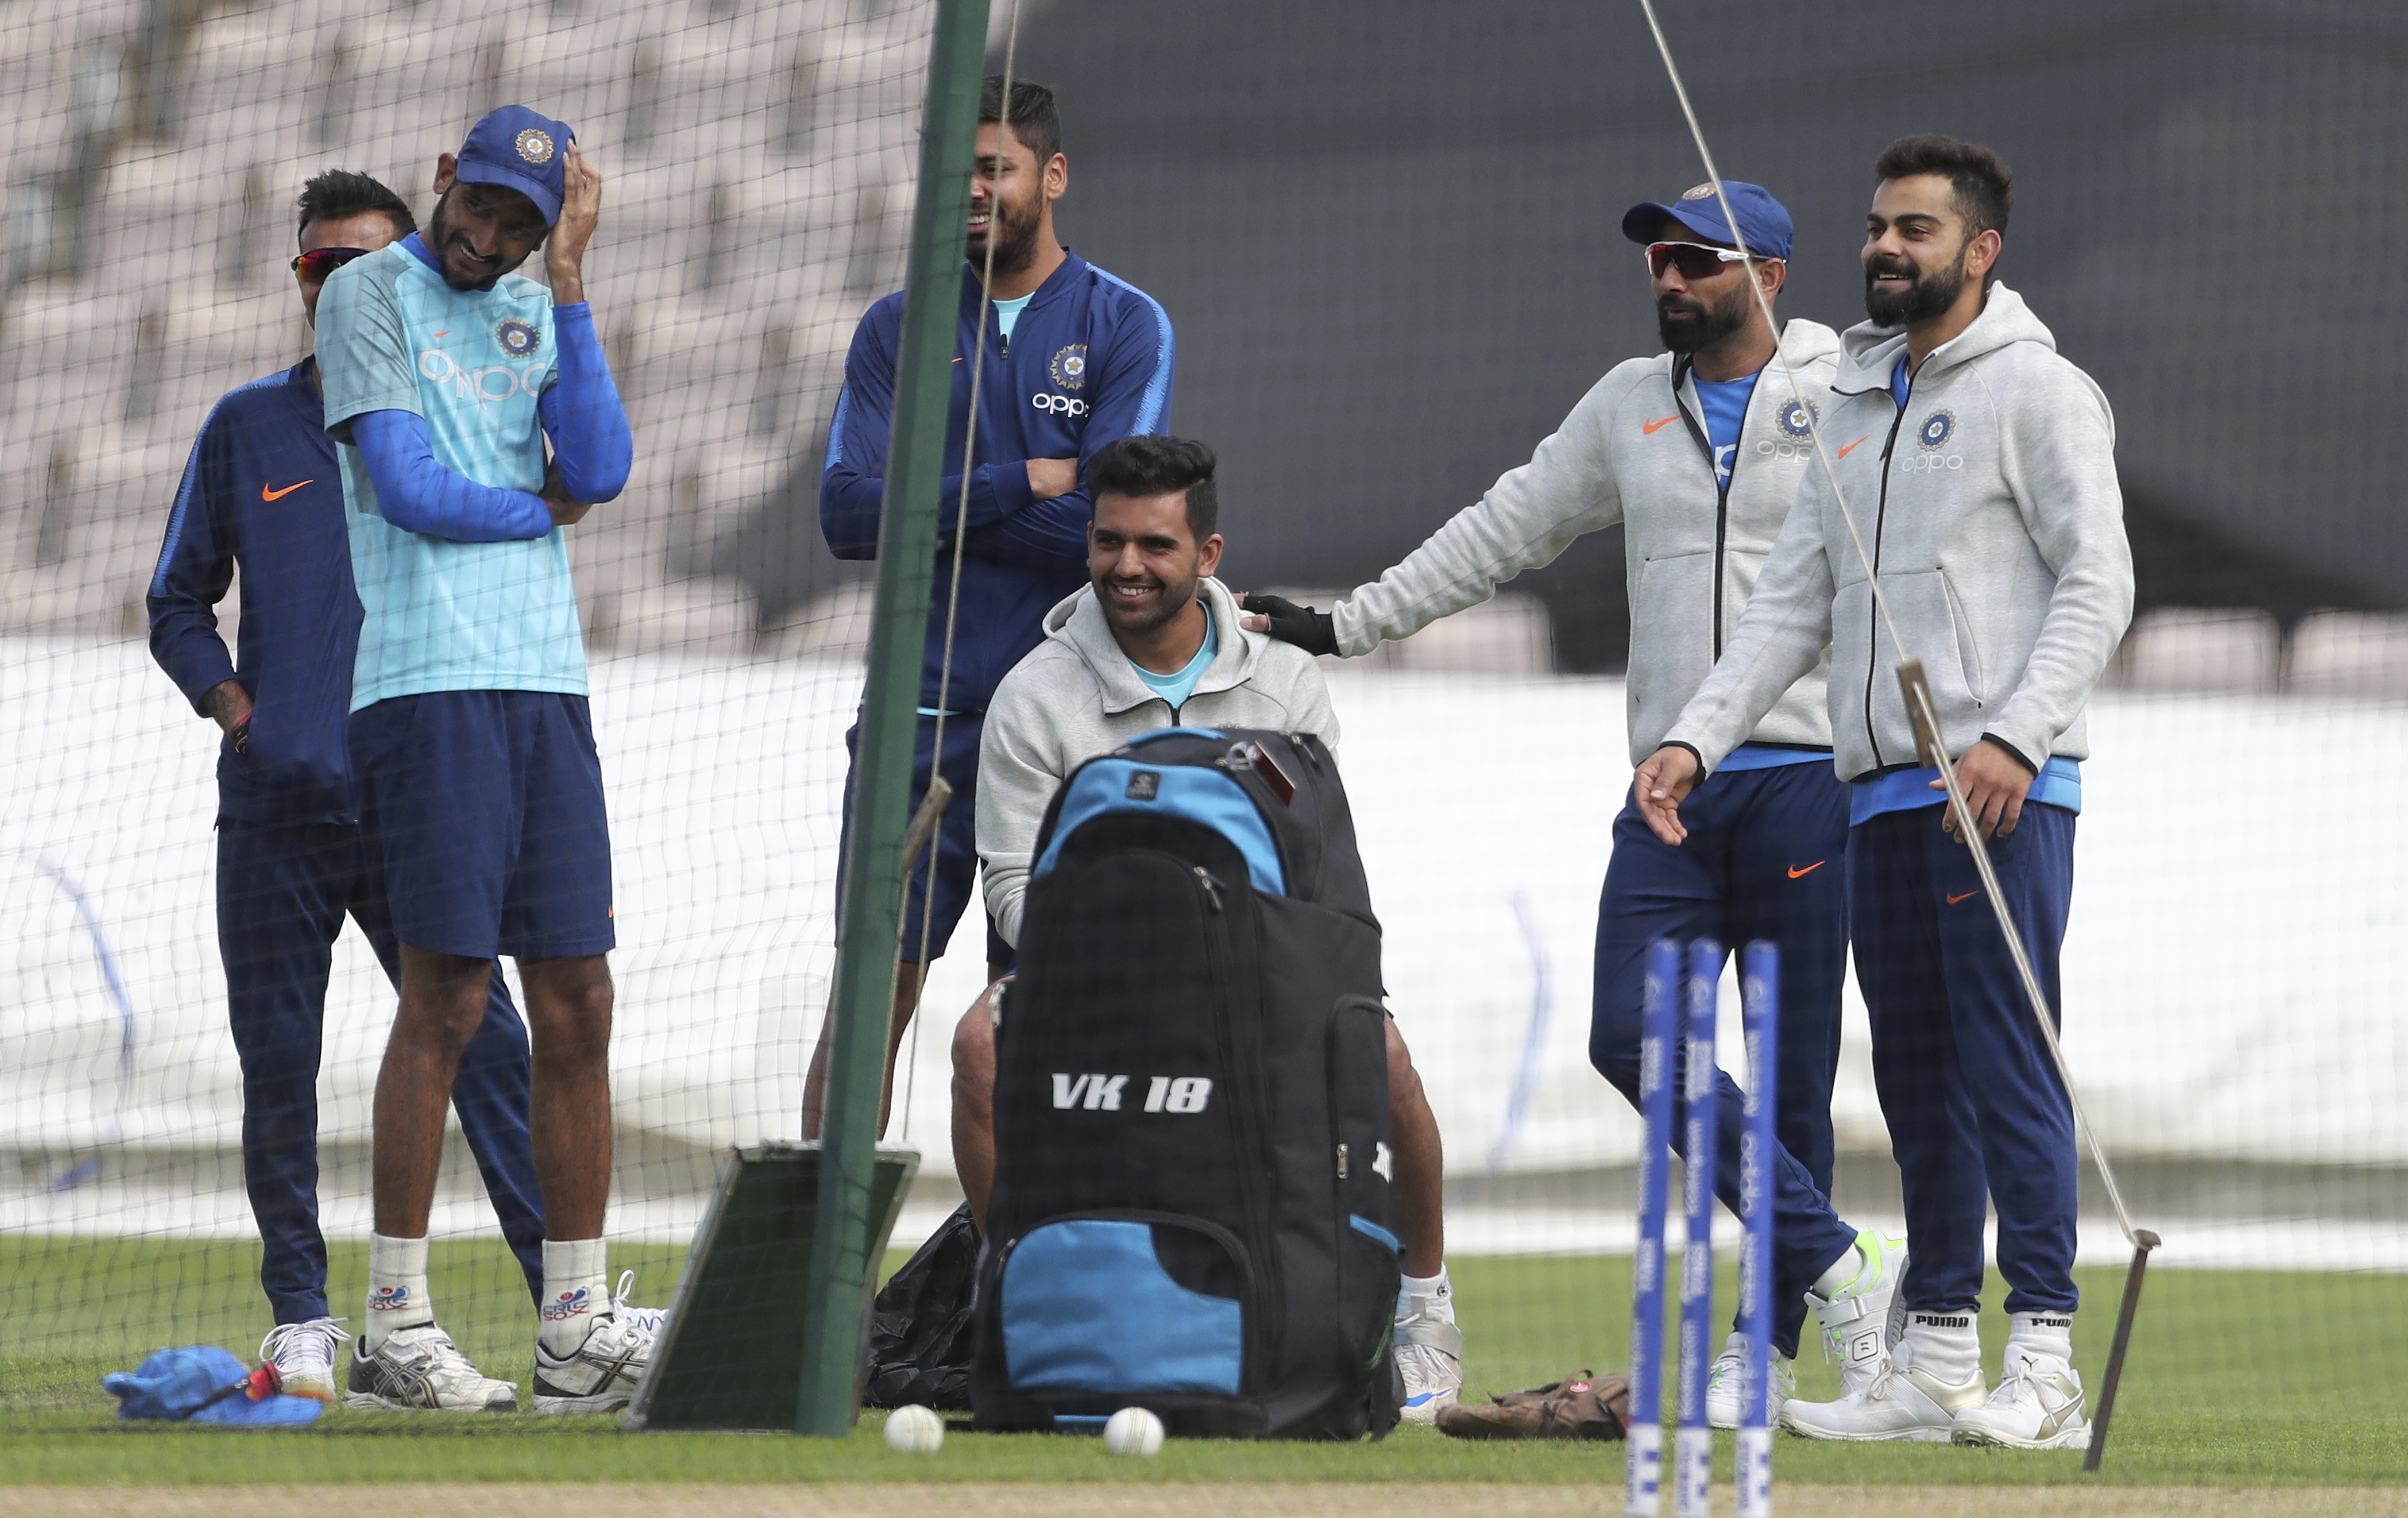 Virat Kohli with teammates at the nets during a training session ahead of the match against South Africa in Southampton on June 3.